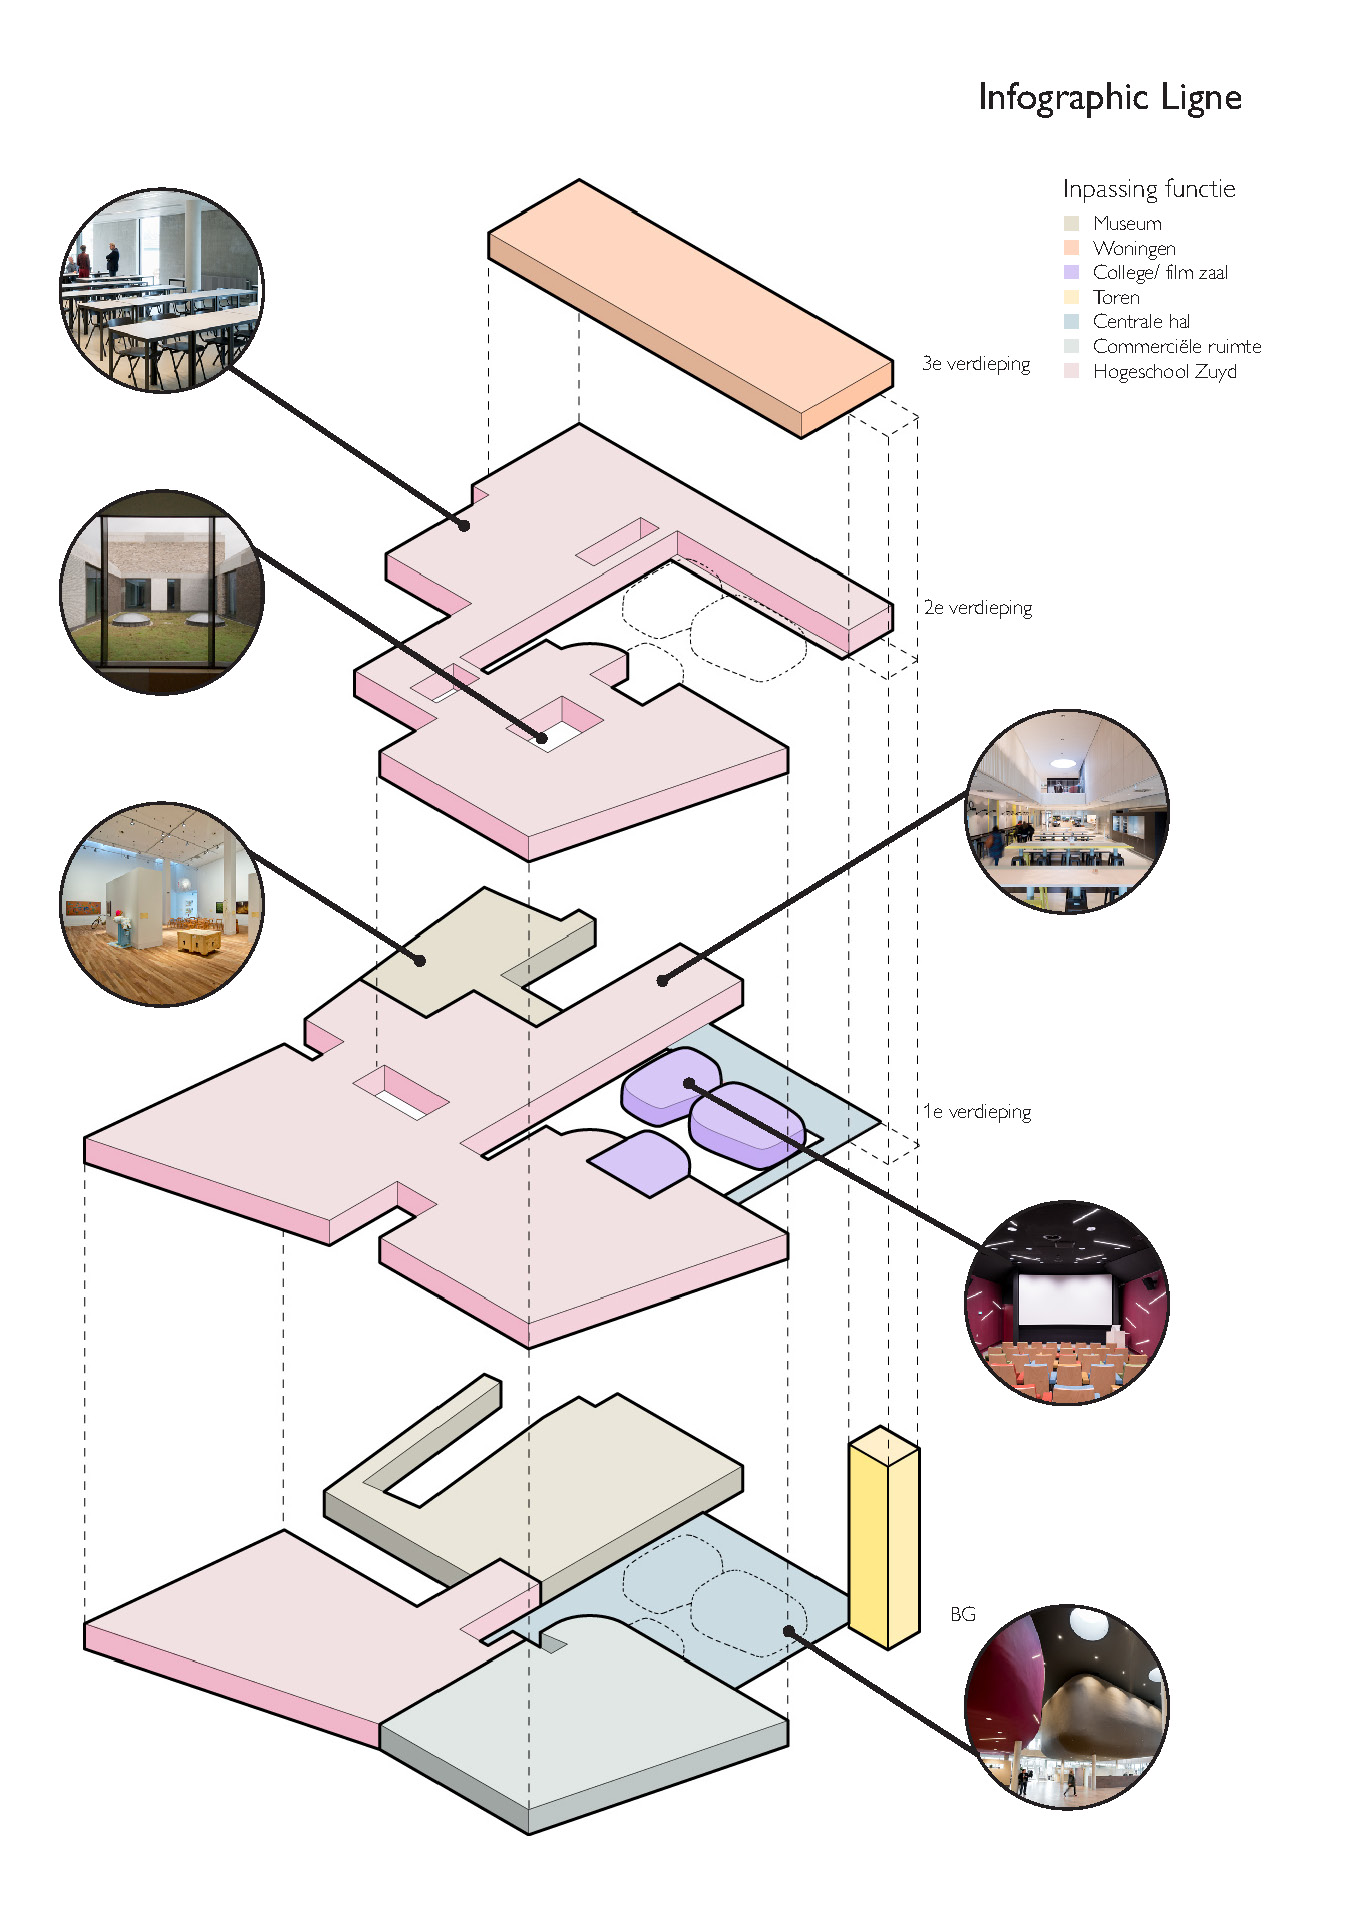 <p>Infographic exploded view Ligne</p>